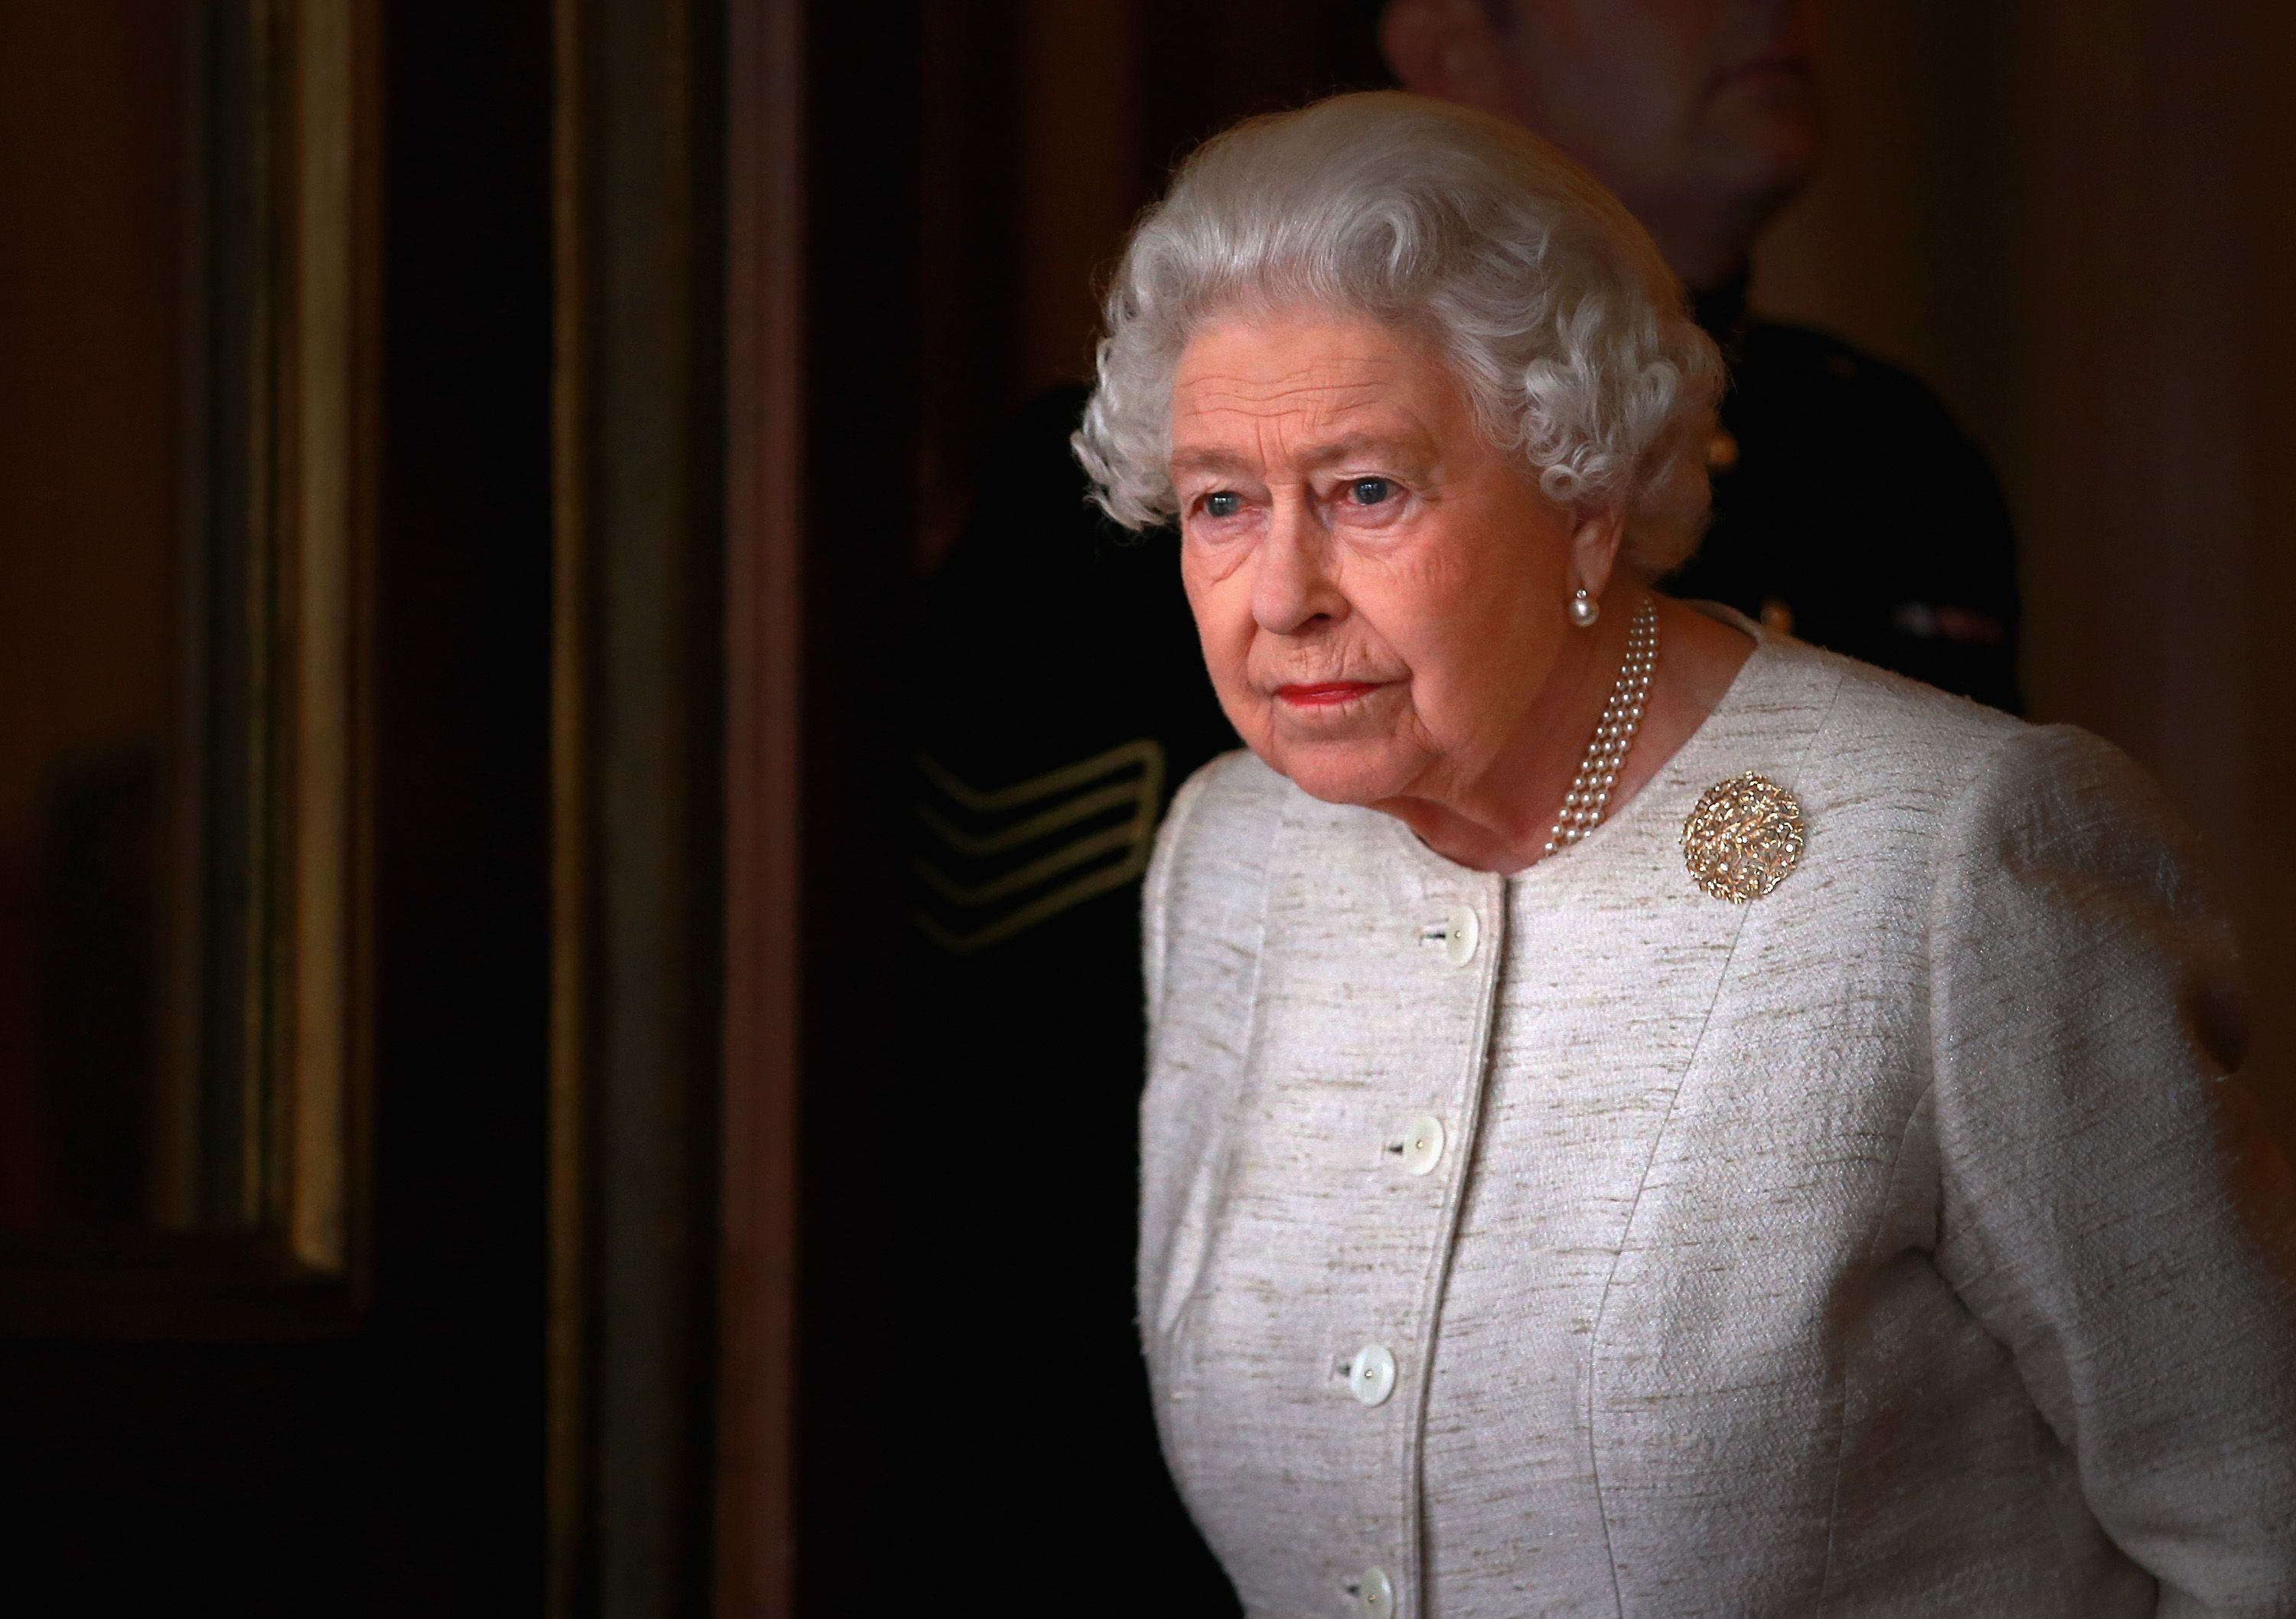 Queen Elizabeth II looking pensive in a white jacket